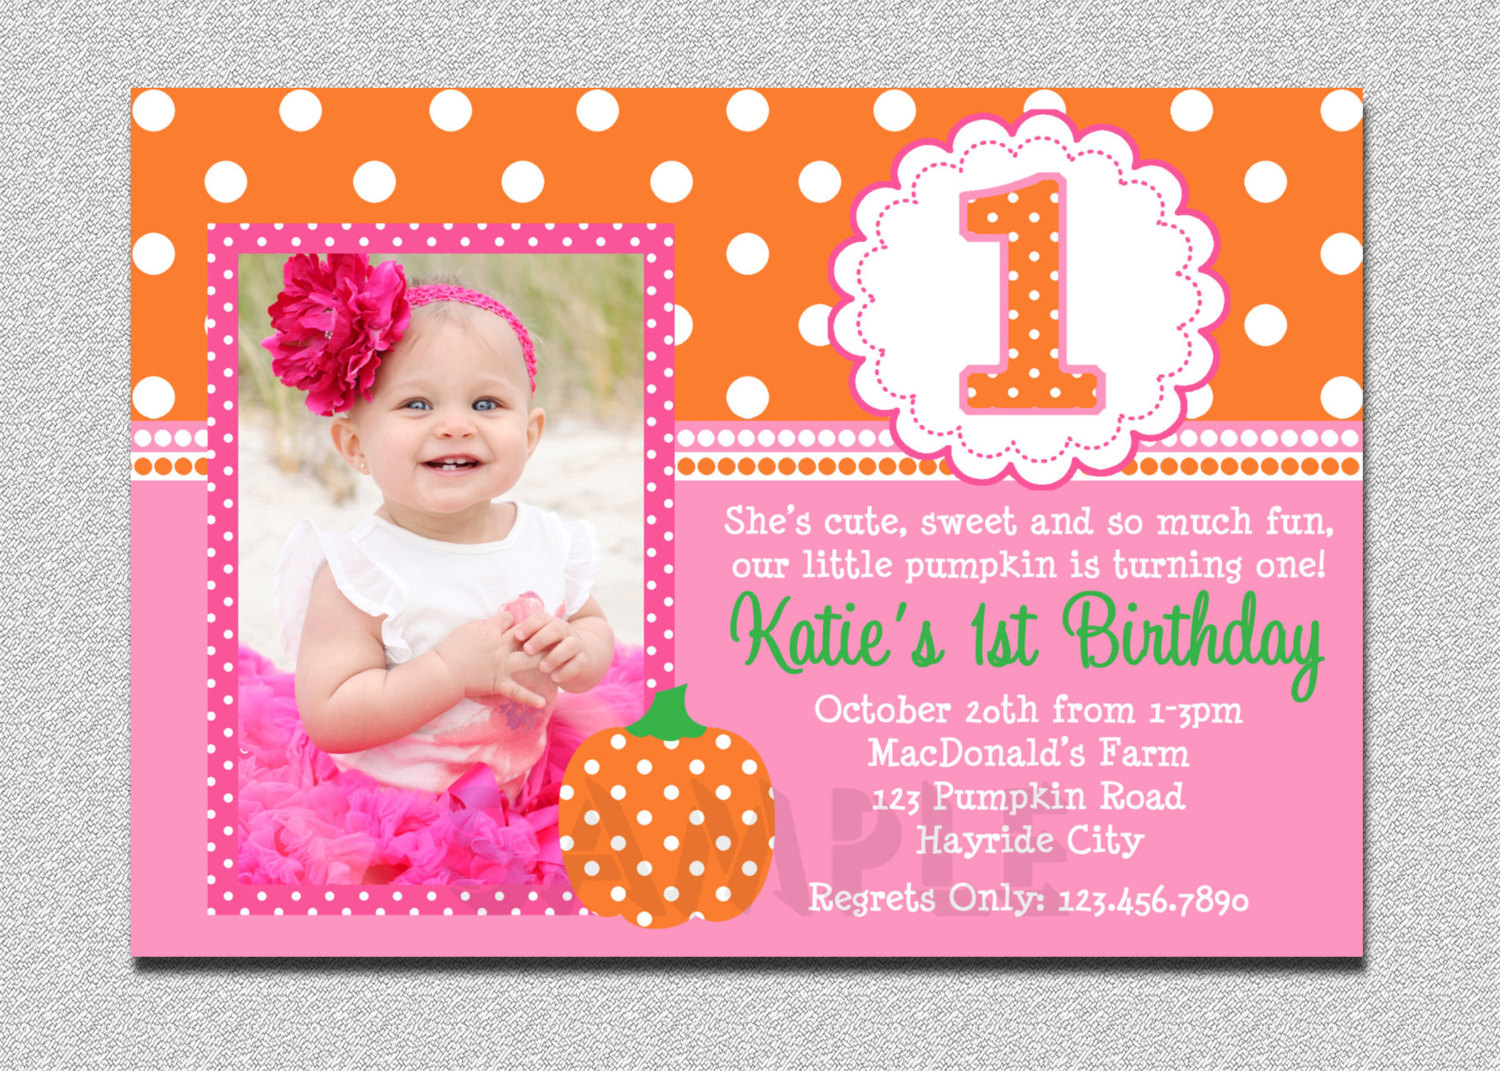 1st birthday invitations templates with photo free ; birthday_invites__1st_birthday_invitations_girl_template_free_1st_7